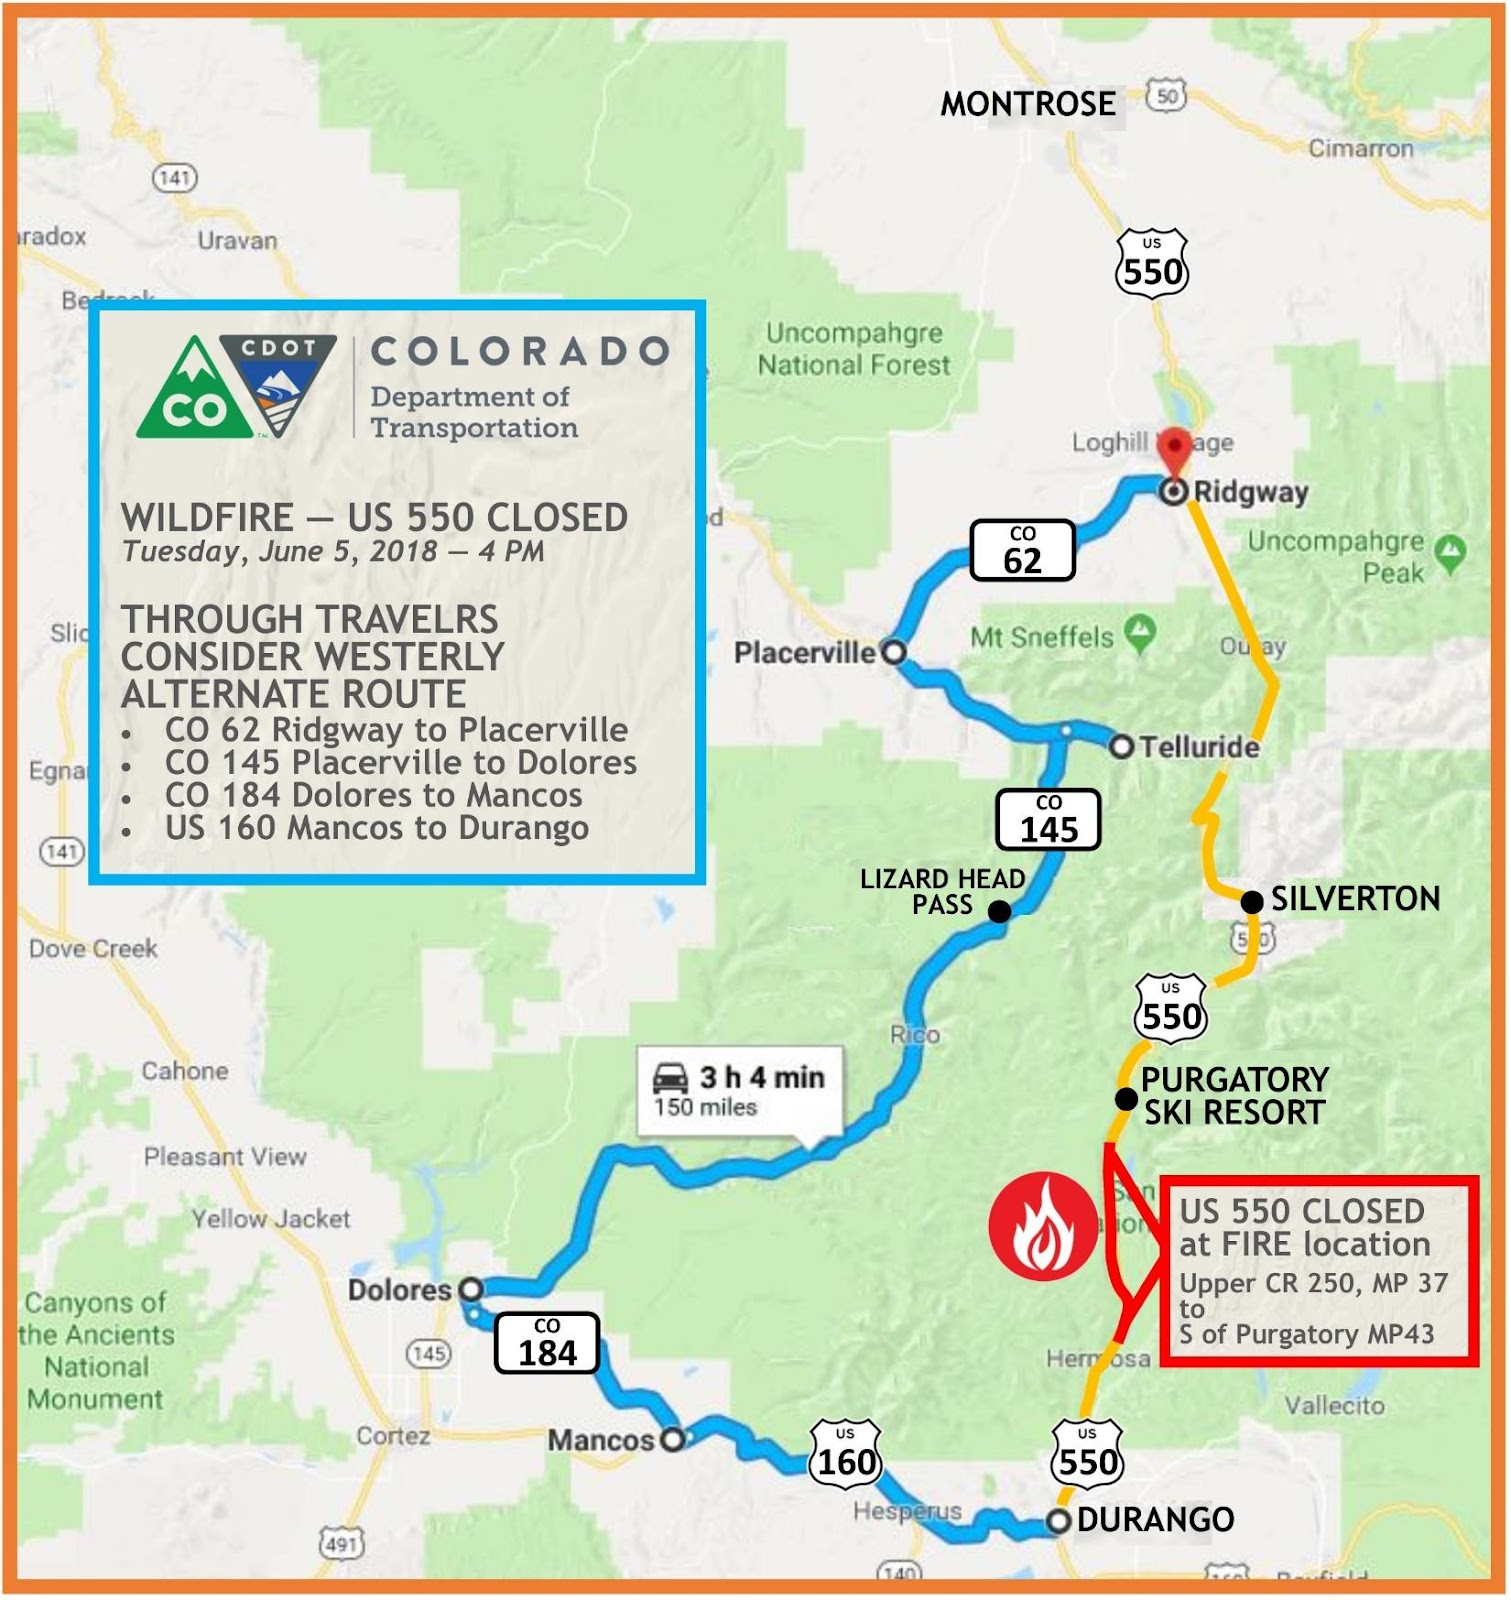 Us 550 416 Fire Update Us 550 Southern Closure Point Moves North